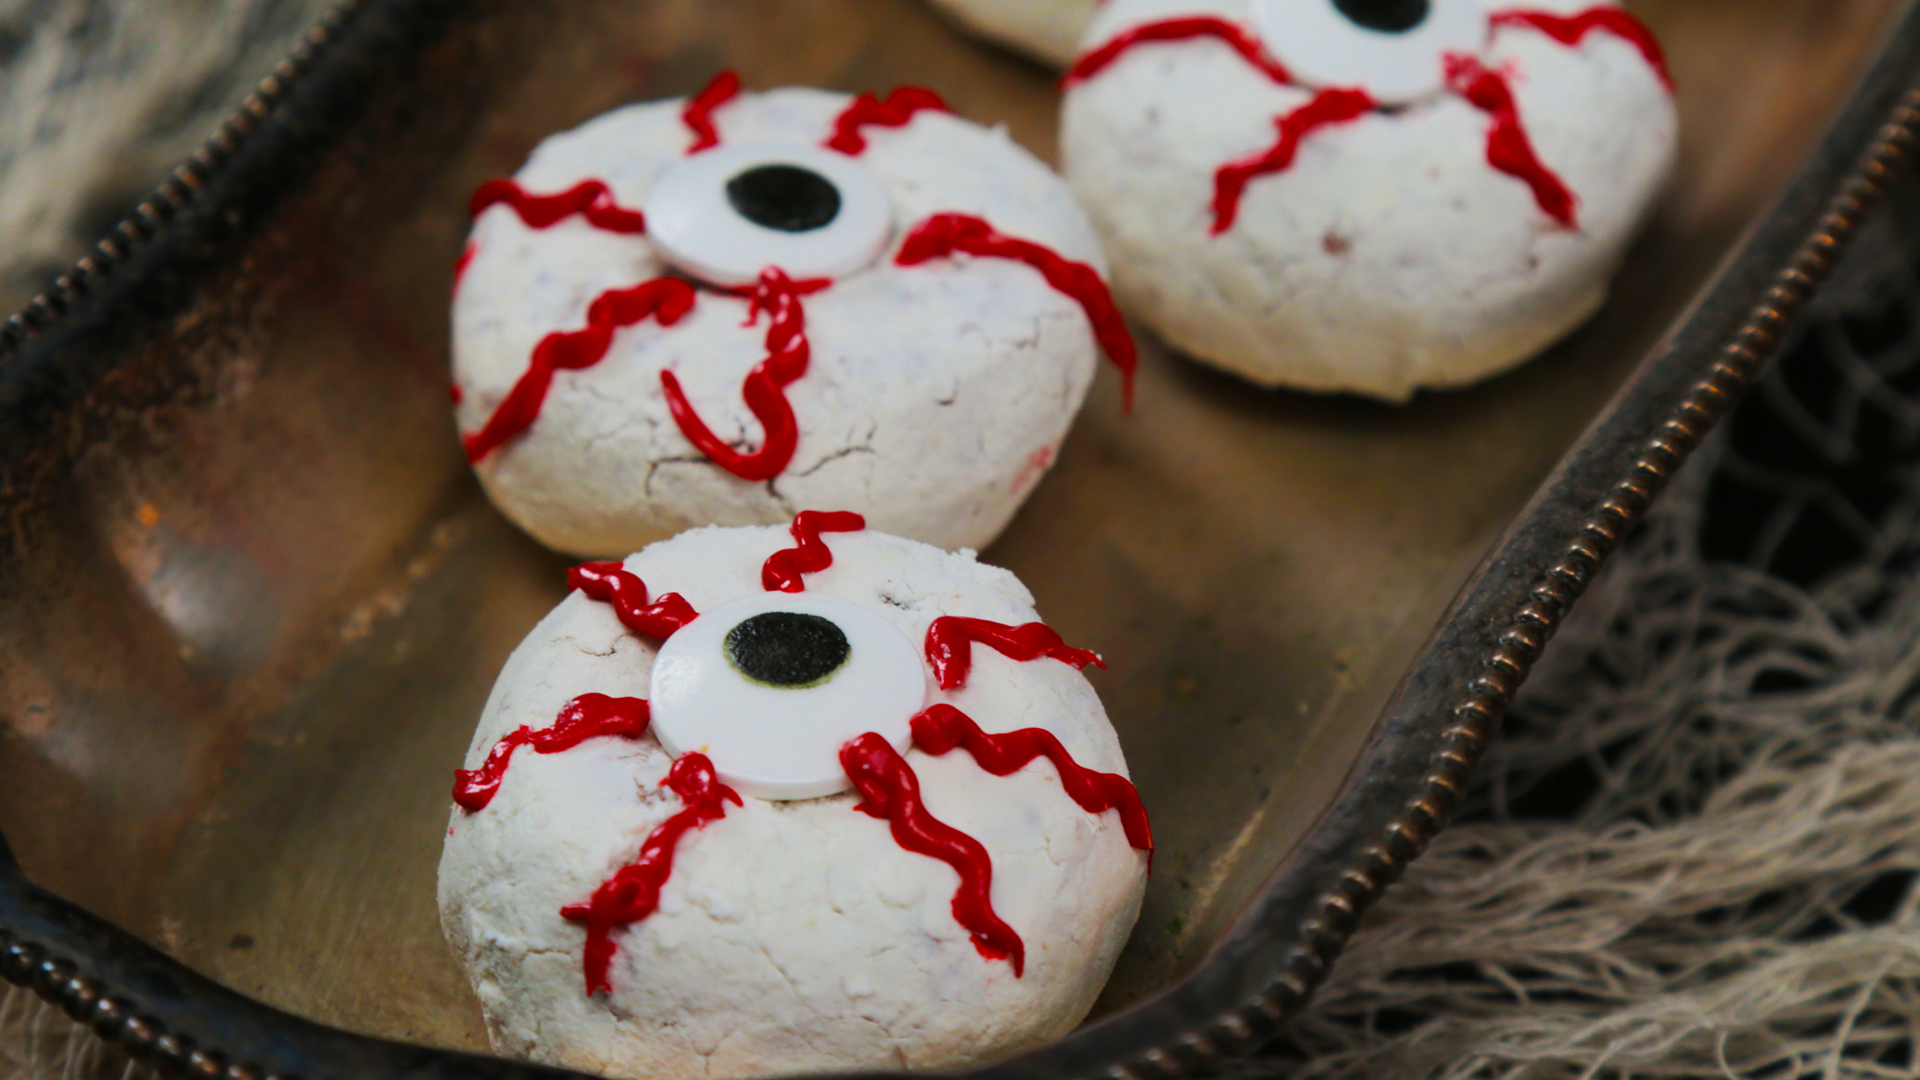 20 Of The Most Epic Halloween Food Craft Ideas On Pinterest Myrecipes